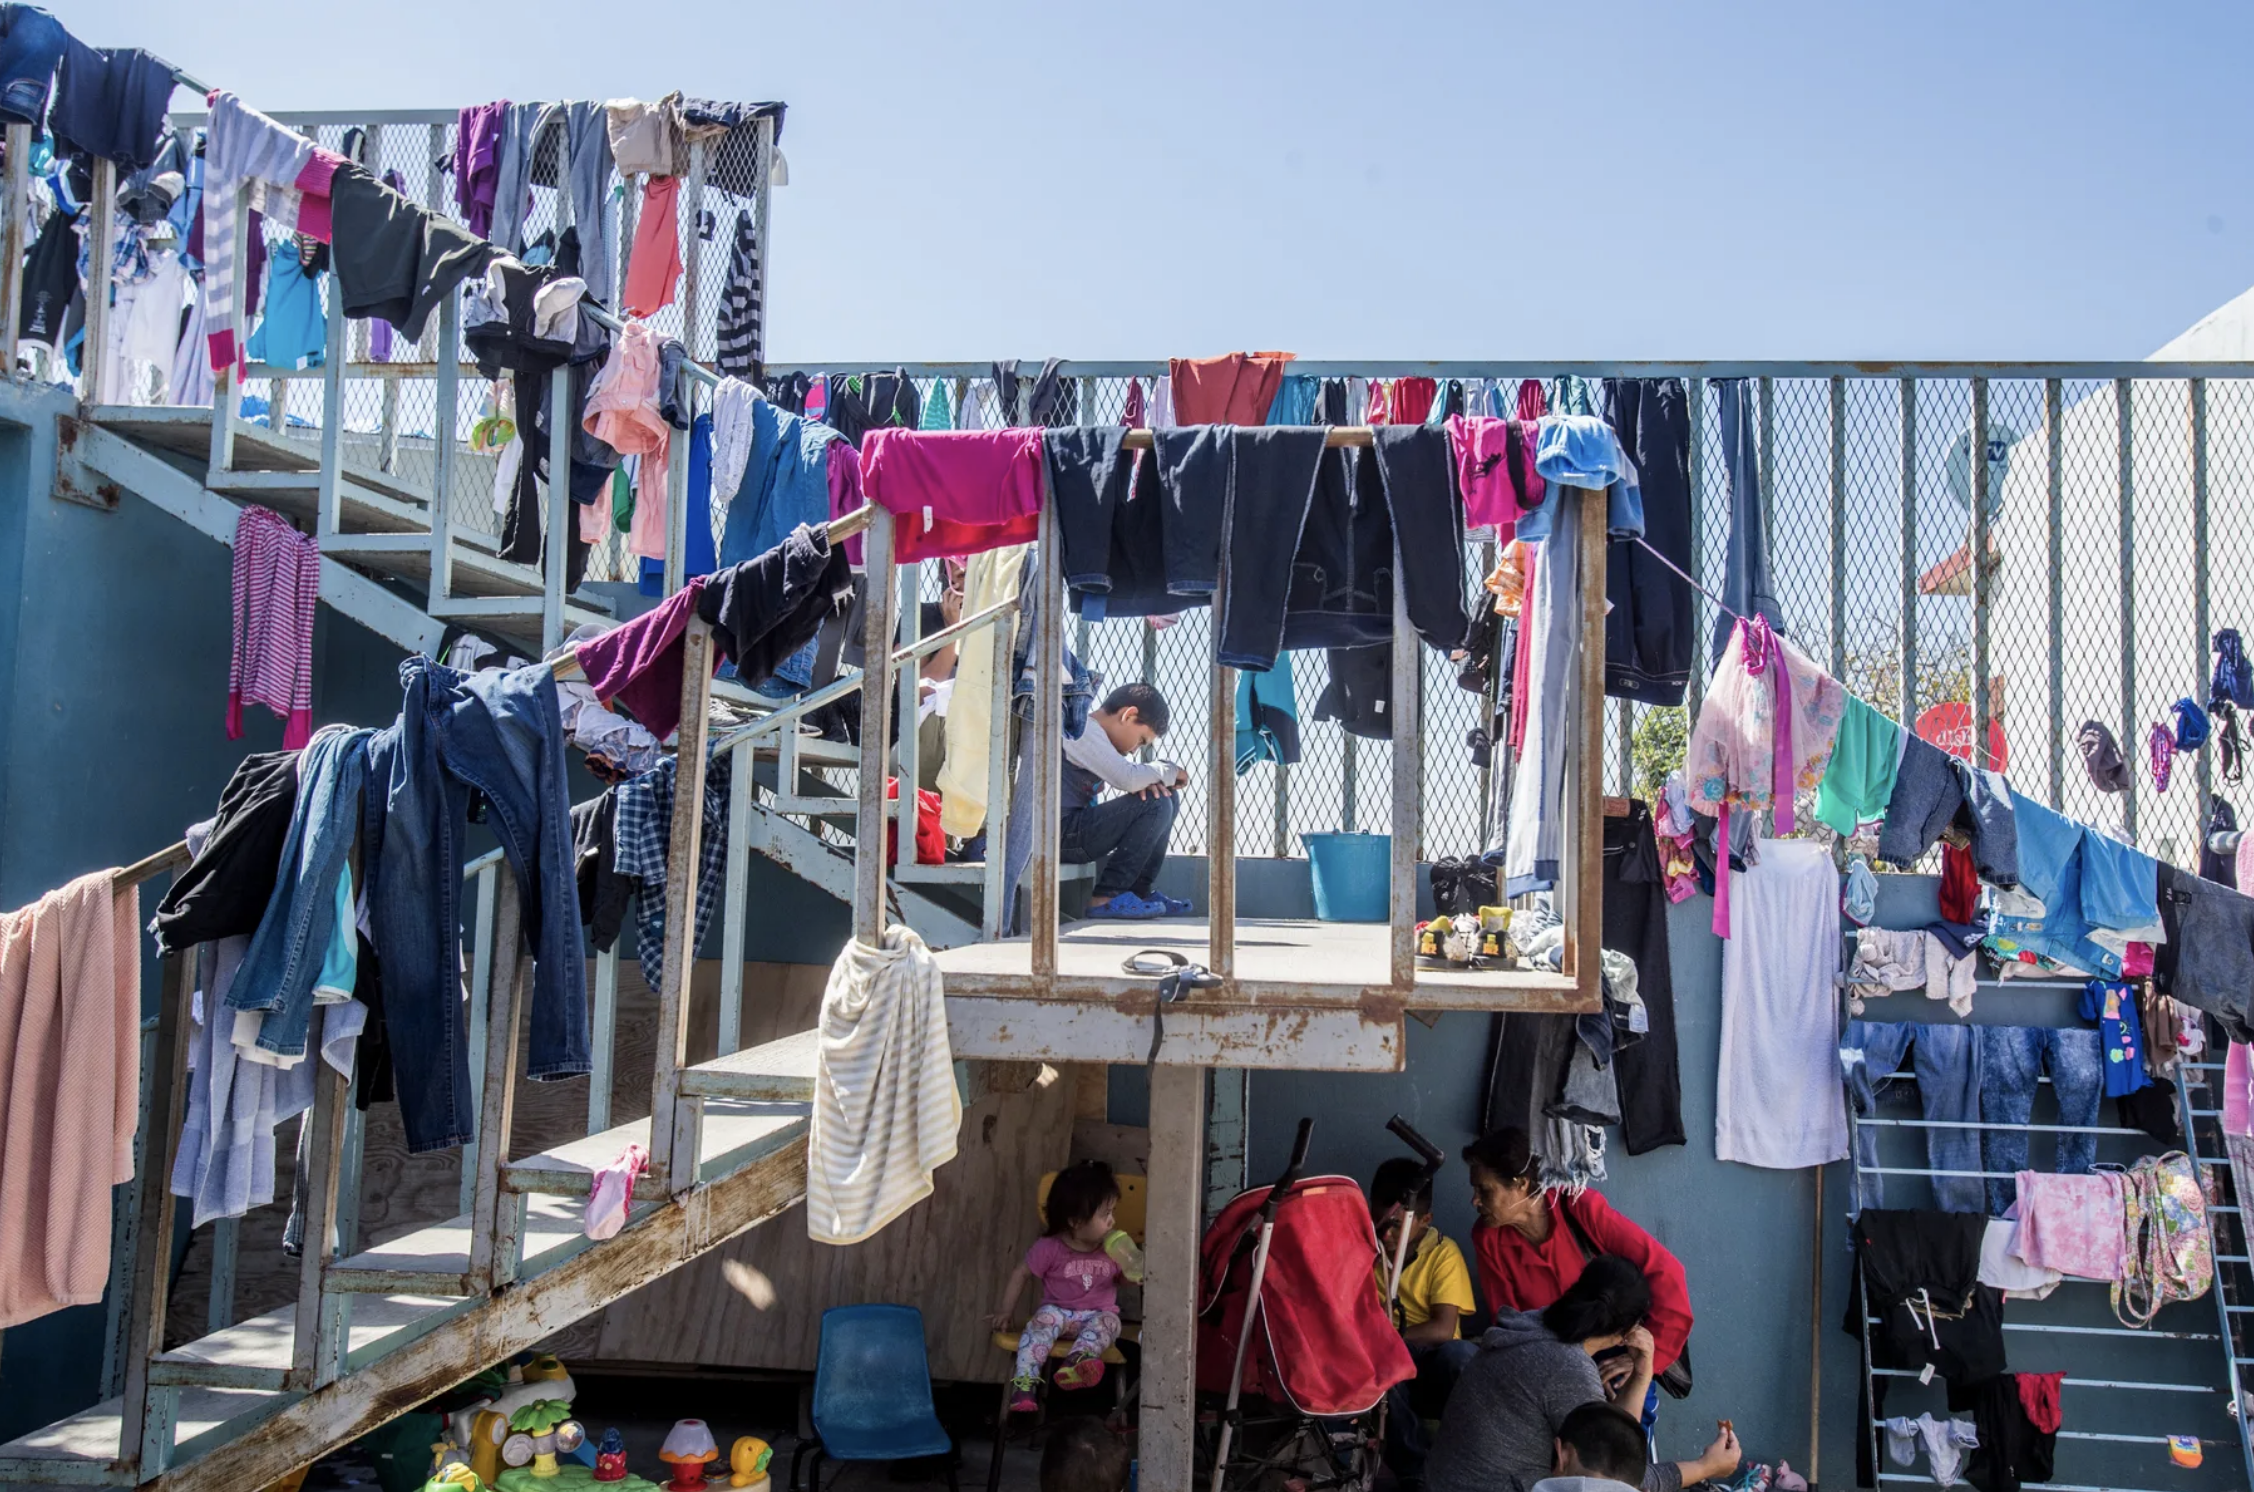 In Tijuana, the poorest asylum seekers spend their time in shelters where they wash clothes and eat communal meals. Image by Omar Ornelas. Mexico, 2019.